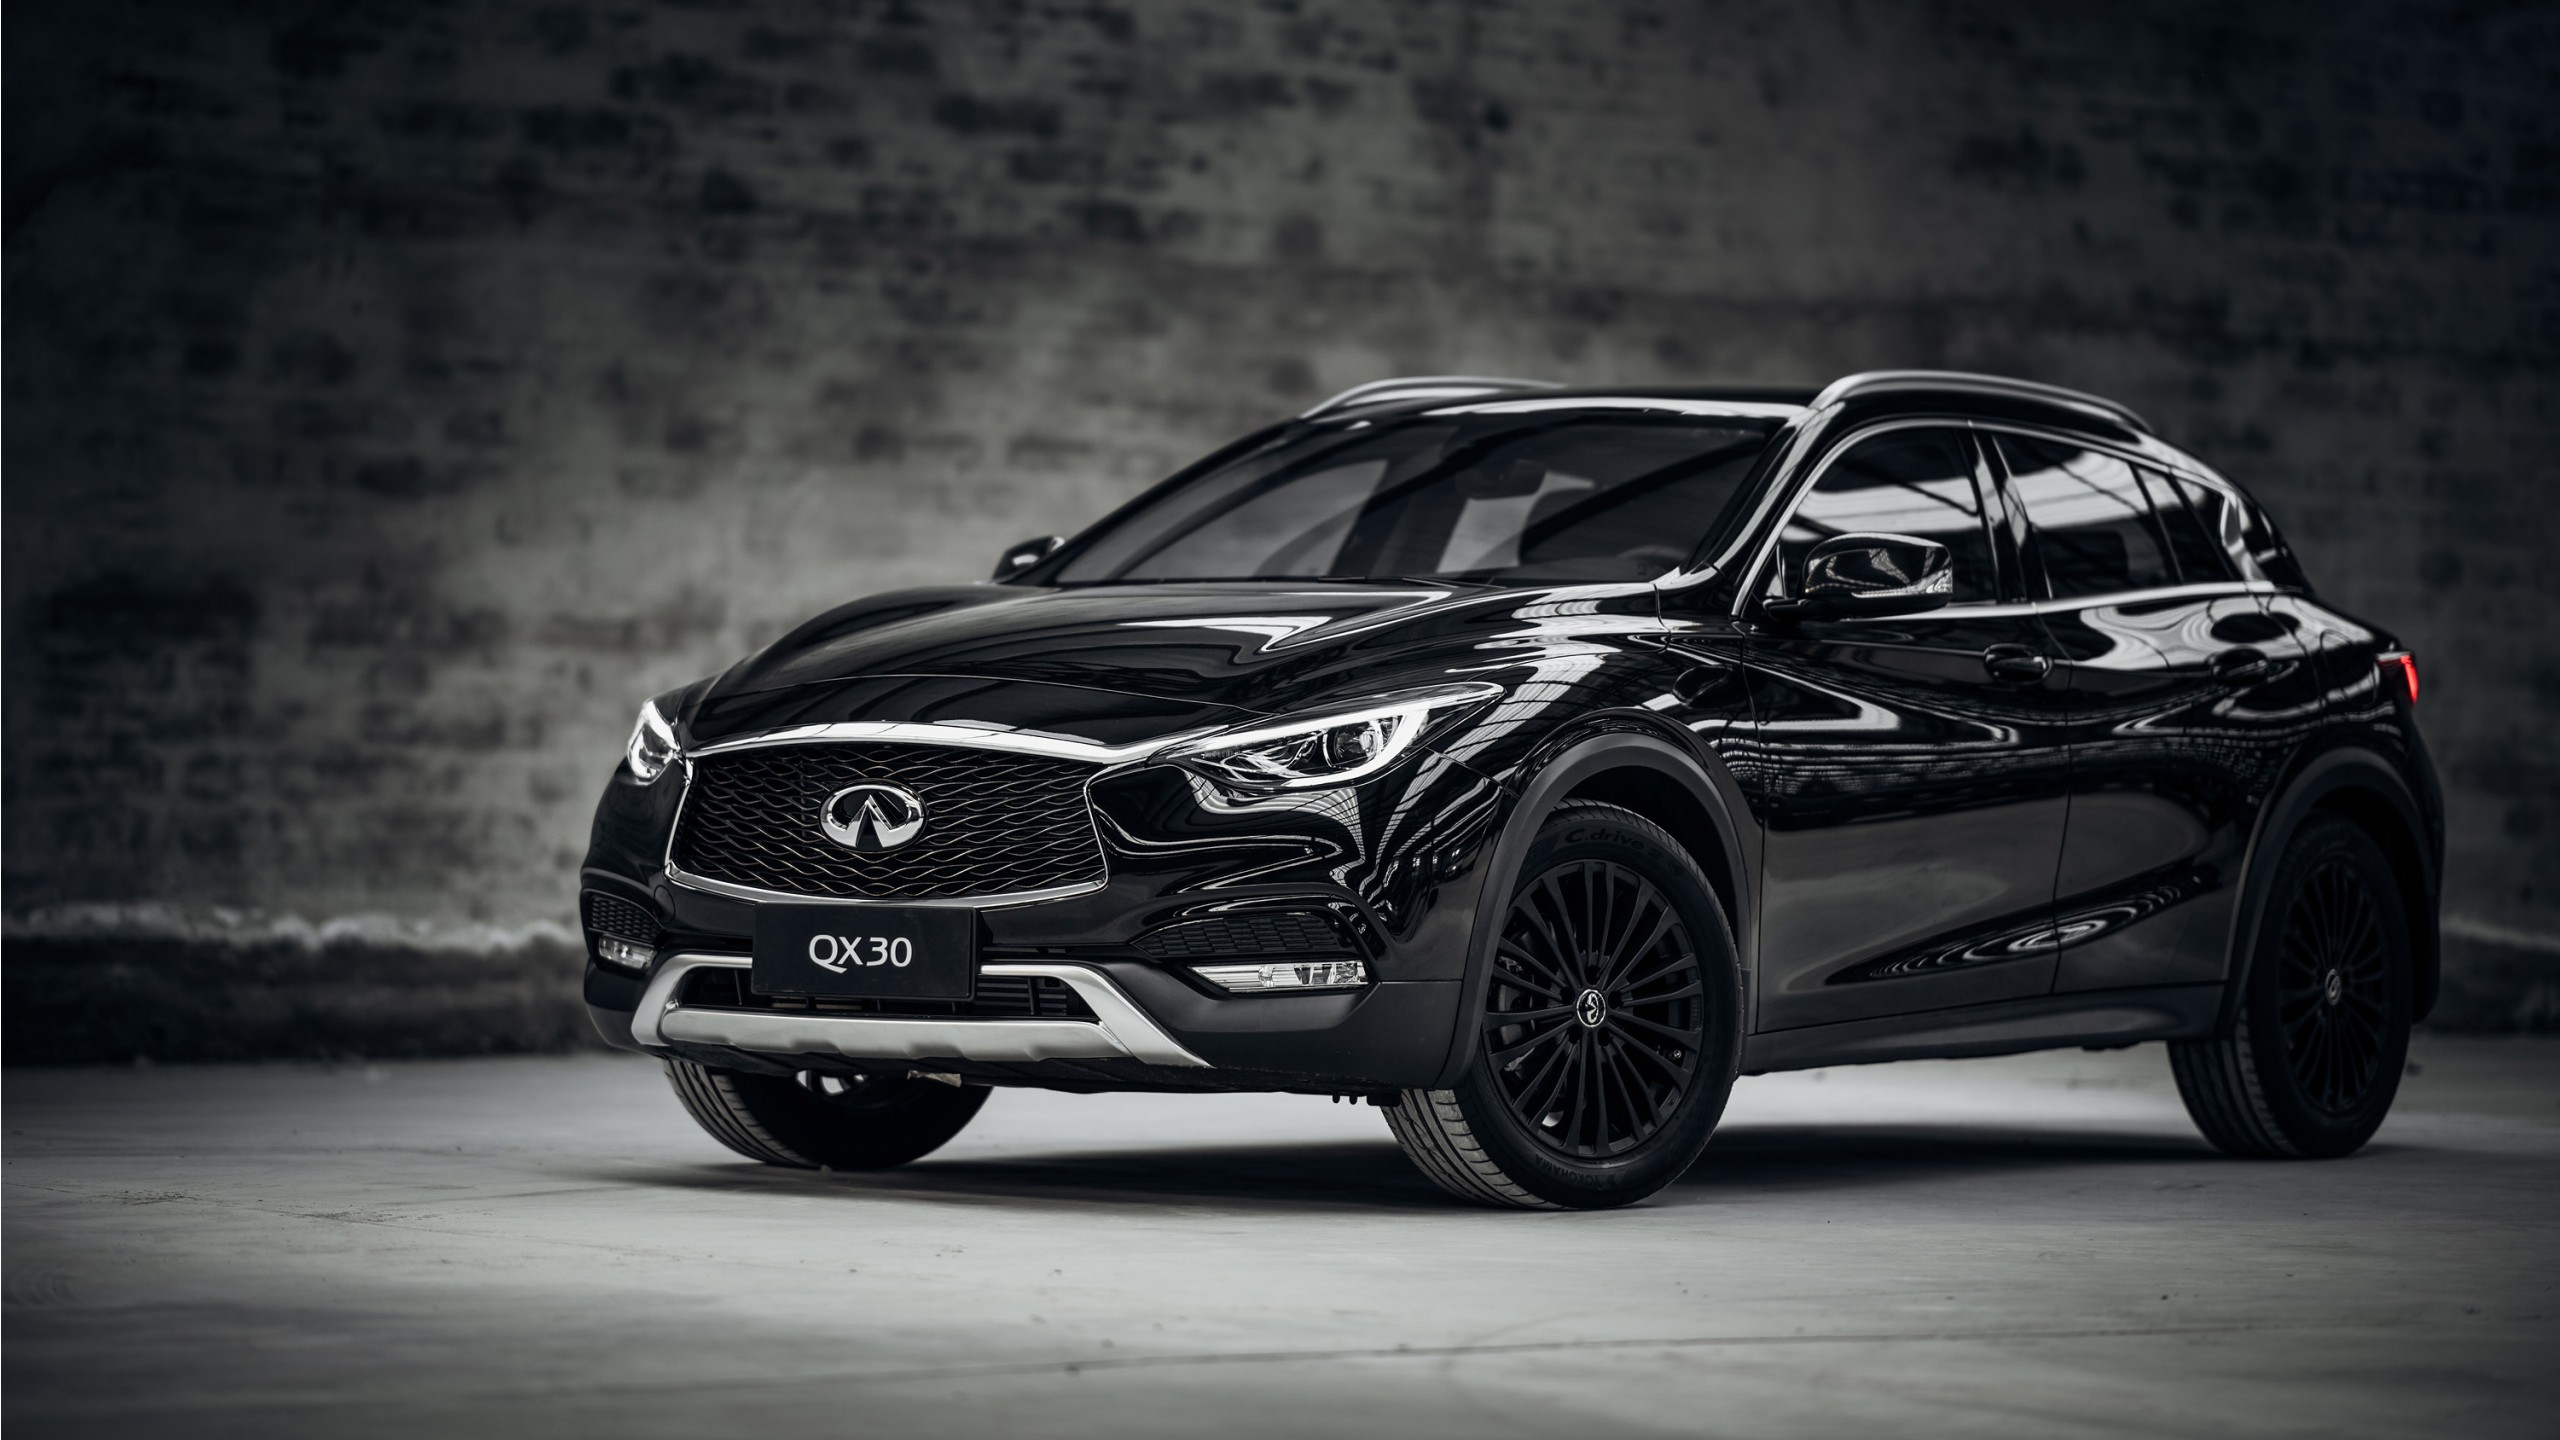 2017 Infiniti QX30 Night Edition Wallpaper | HD Car Wallpapers | ID #9184